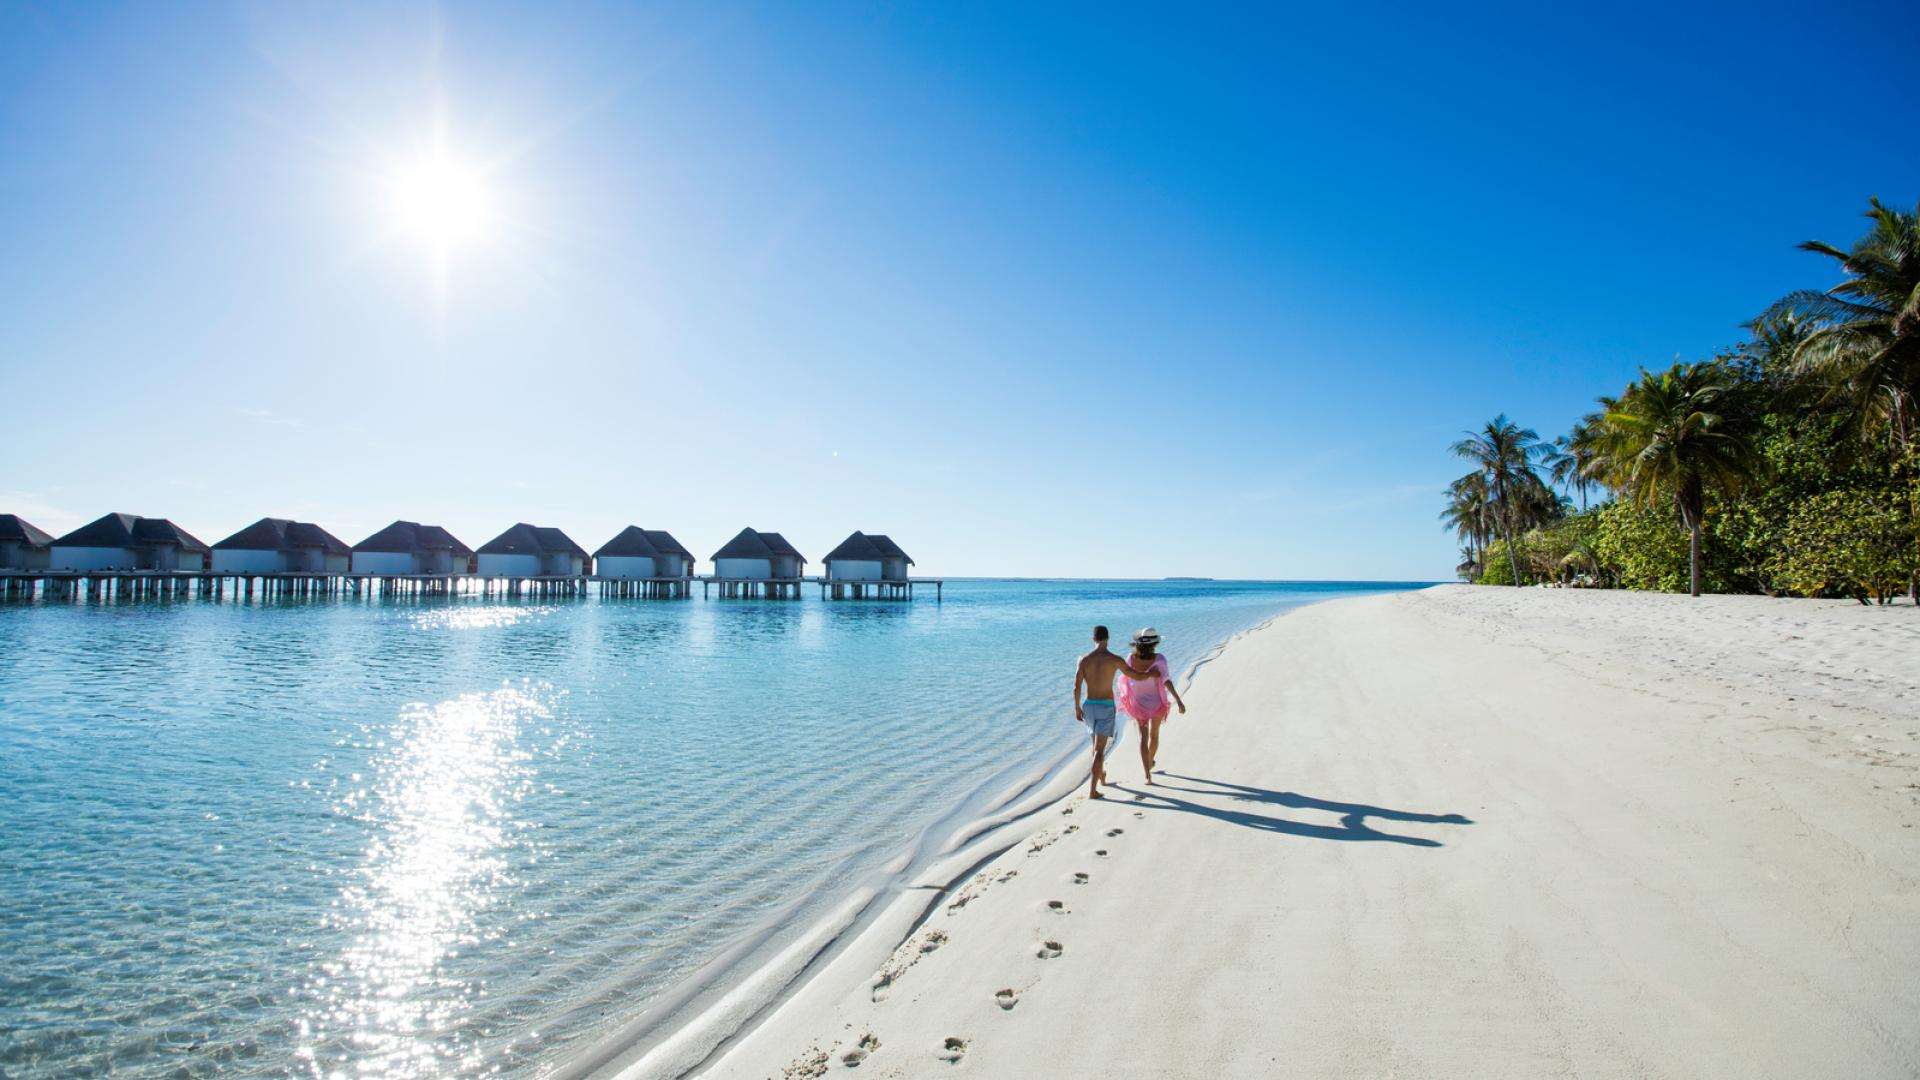 walk on the beach in maldives in kanuhura hotel